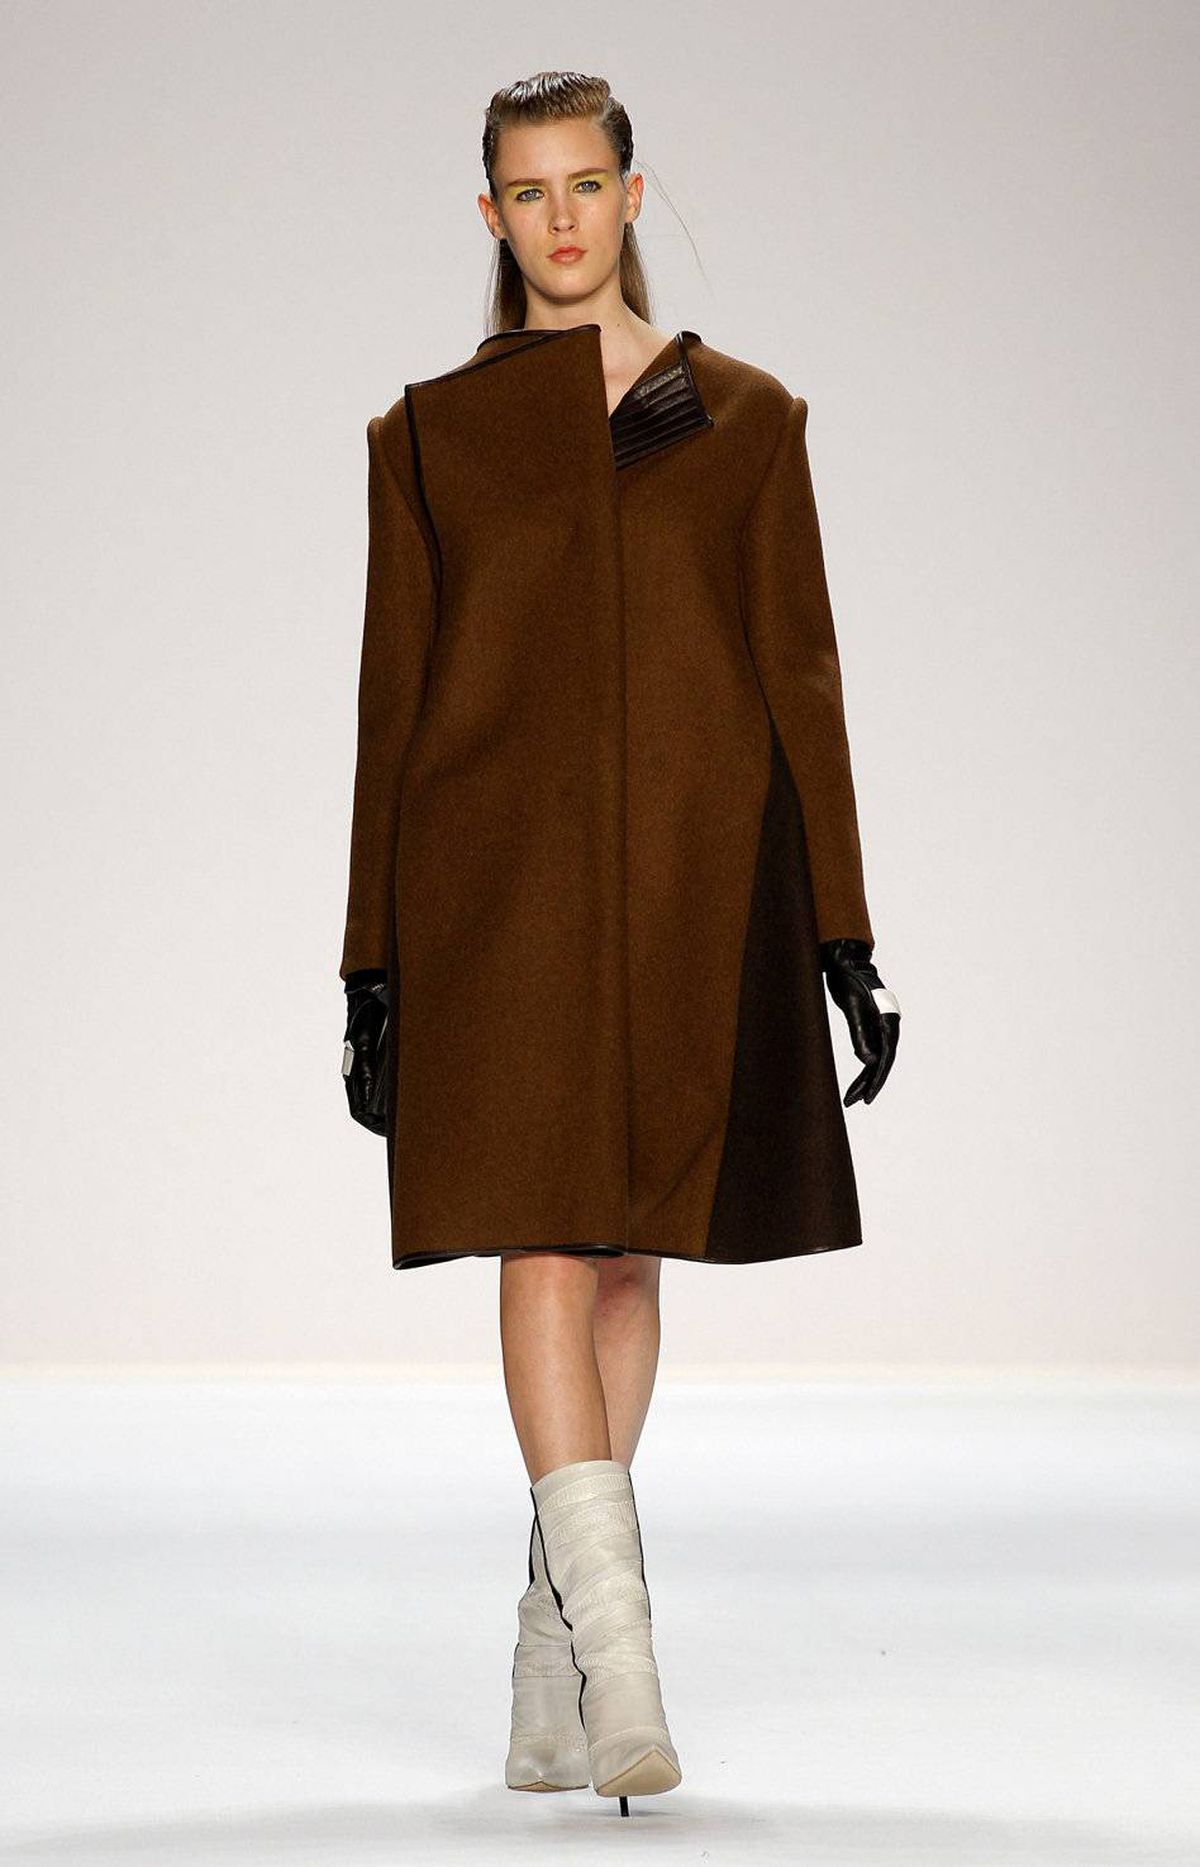 Distinctively formed coats were the standout element from Narciso Rodriguez' show. Such is his skill with fabrics that they almost appeared buttressed or propped up from underneath.